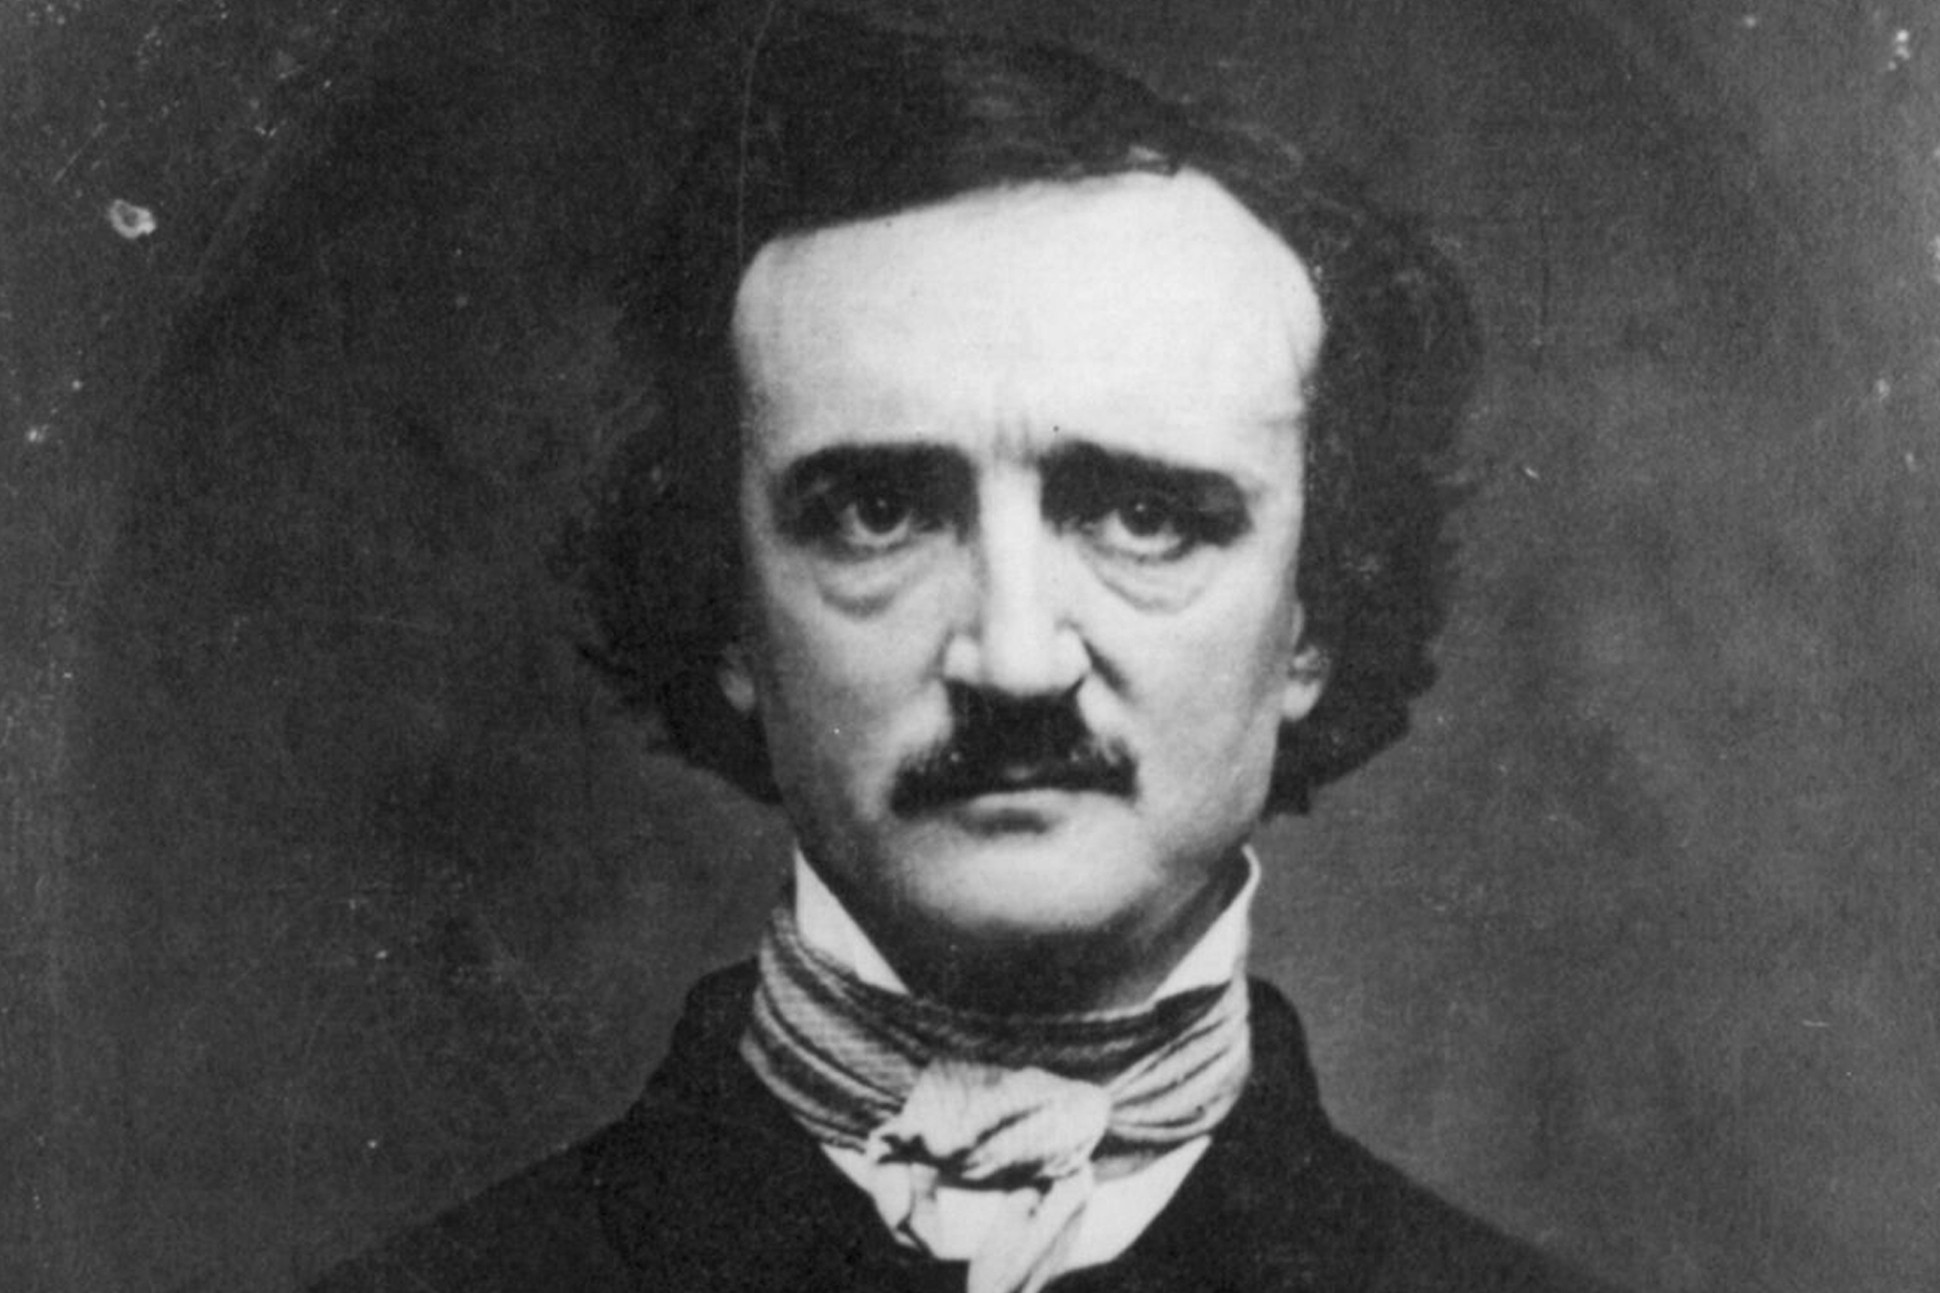 edgar-allan-poe-hires-cropped.jpg?w=1200&h=1200&fit=max